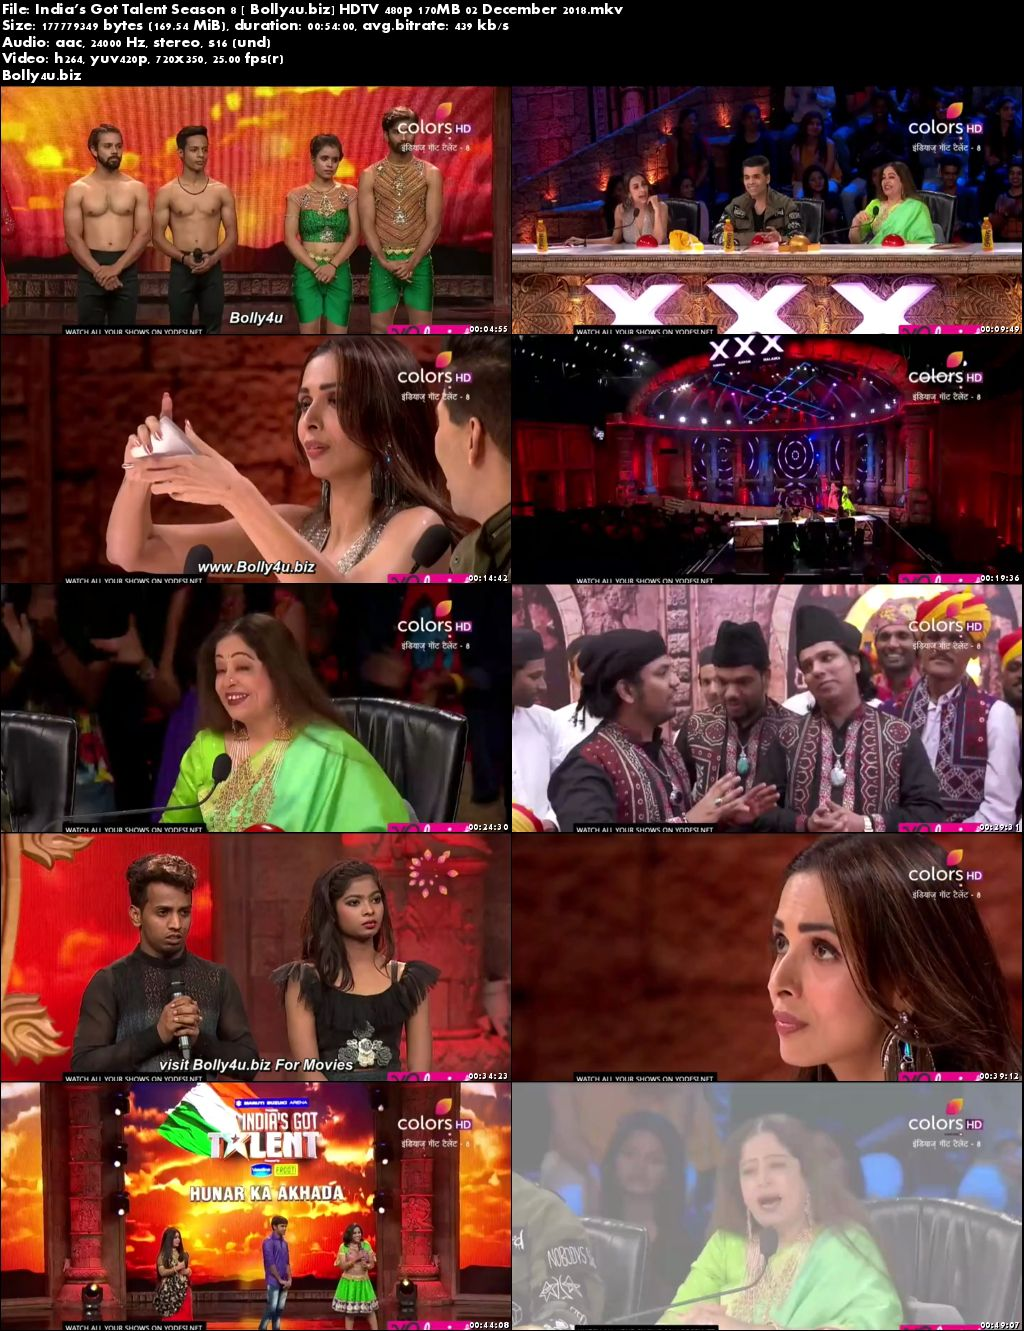 Indias Got Talent Season 8 HDTV 480p 170MB 02 December 2018 Download